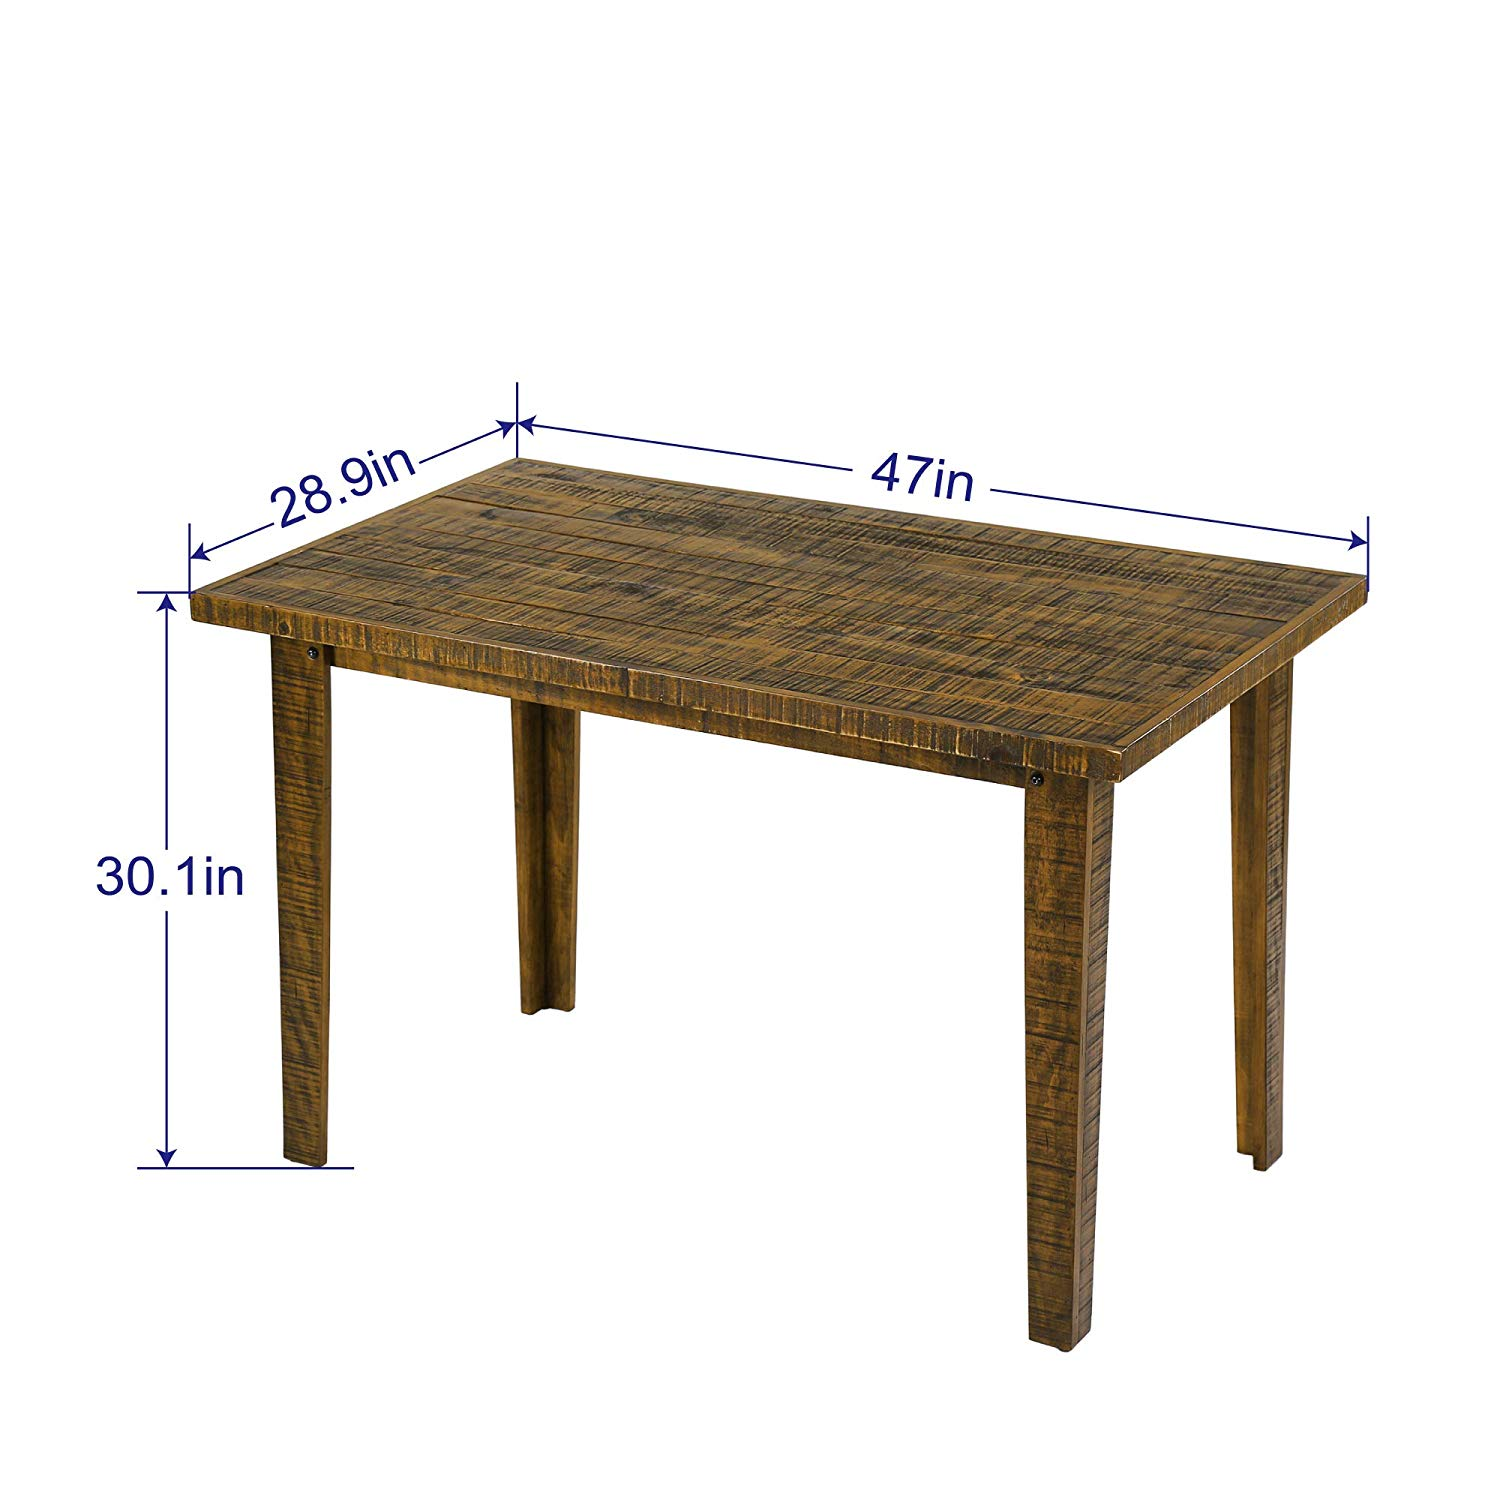 sleeplace casual design solid wood dining table coffee end computer cocktail brown kitchen amish furniture spray paint wooden double dog kennel selfless ethan allen tufted leather